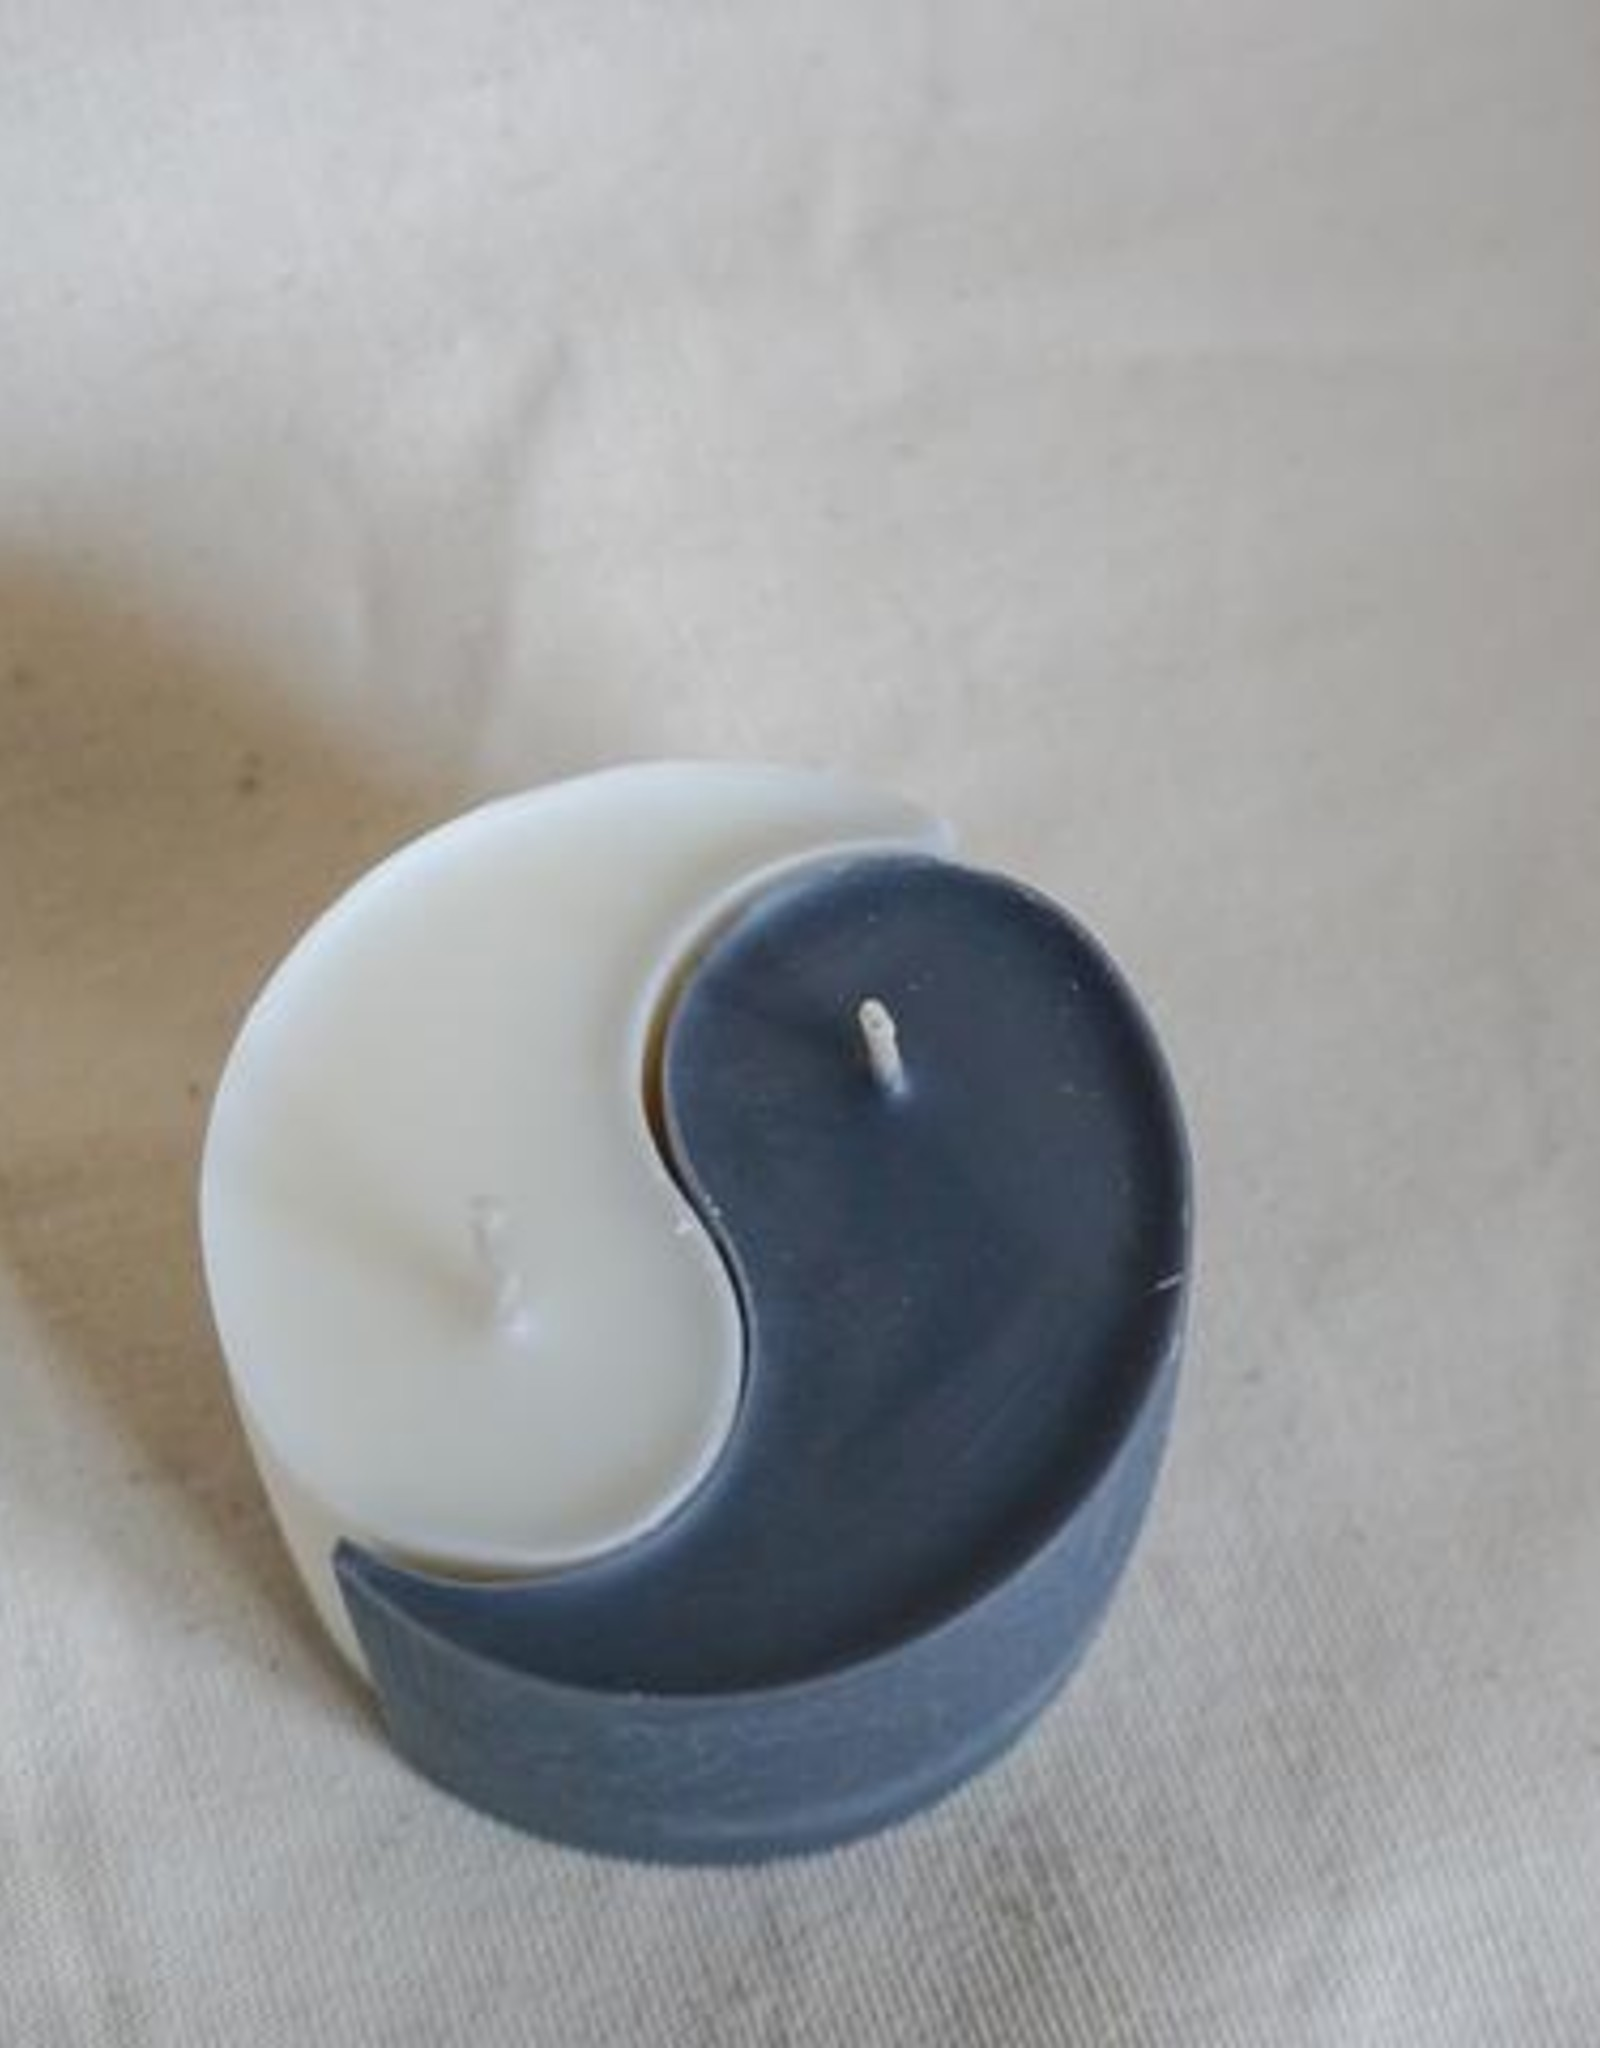 For Love Club Yin Yang Candle Set